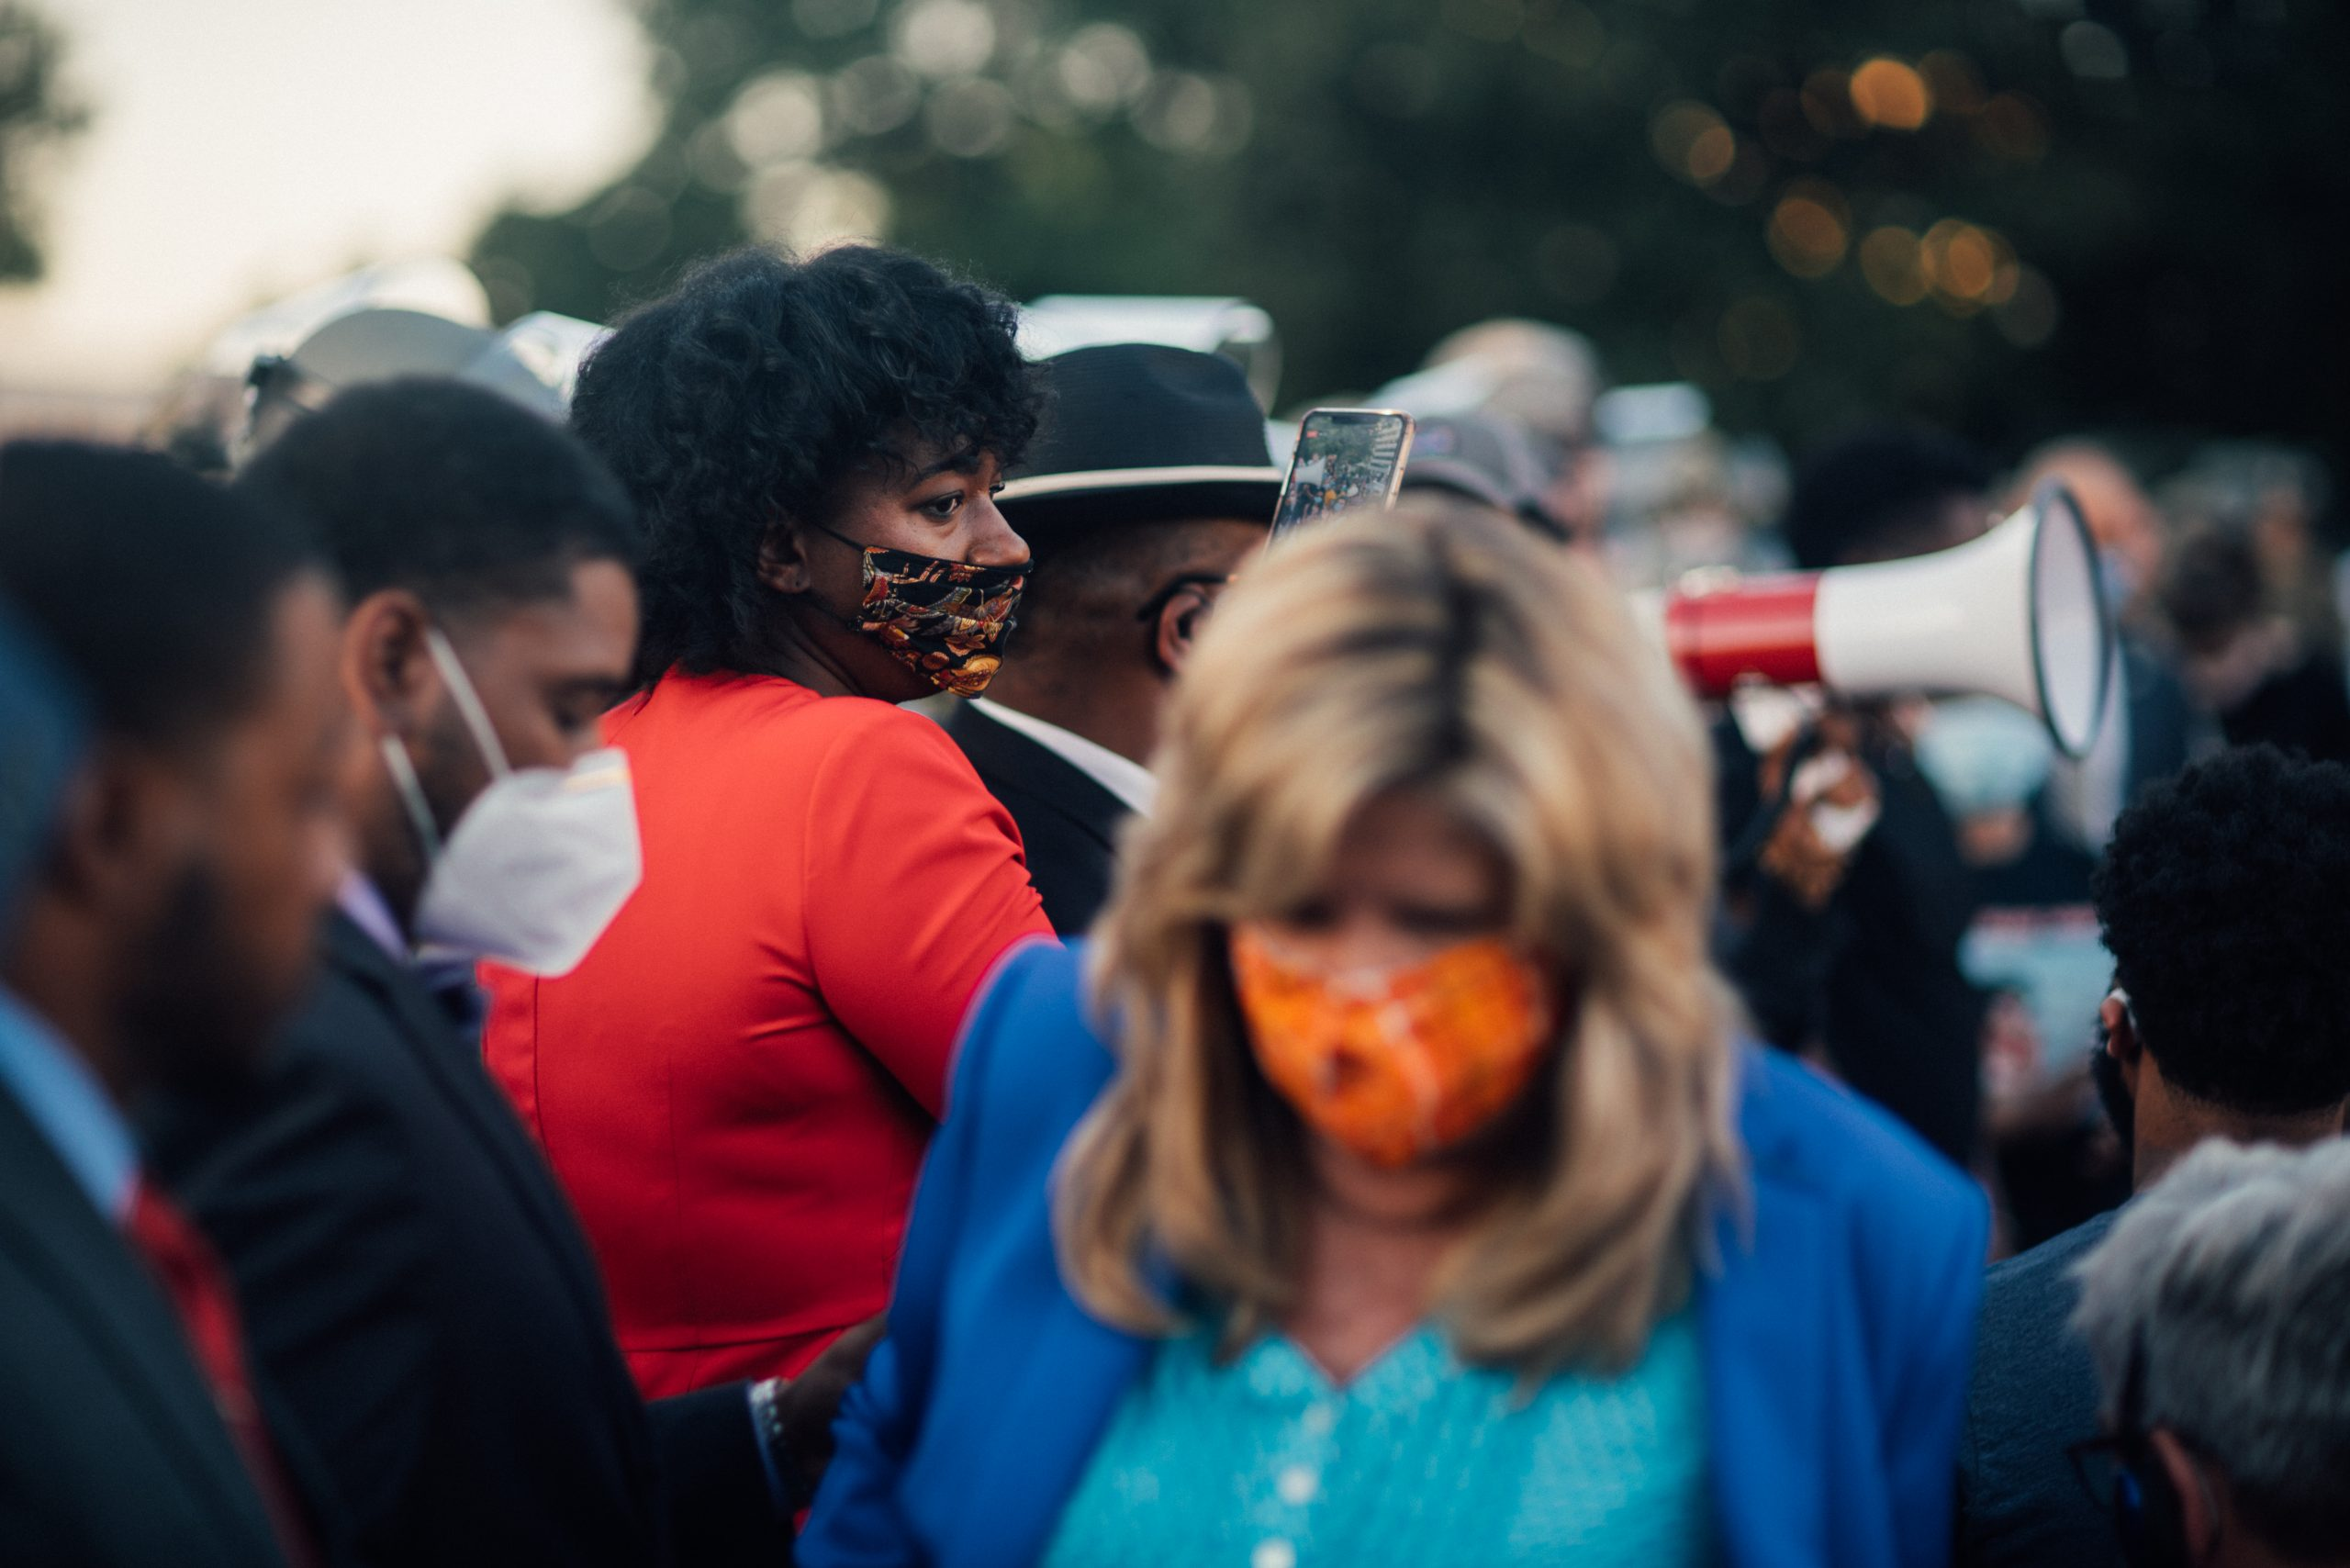 Nashville, Tenn., Jume 1 - State Reps. London Lamar (D- Memphis) in red and Gloria Johnson (D-Knoxville) in mask facing camera at vigil. (Photo: Alex Kent)